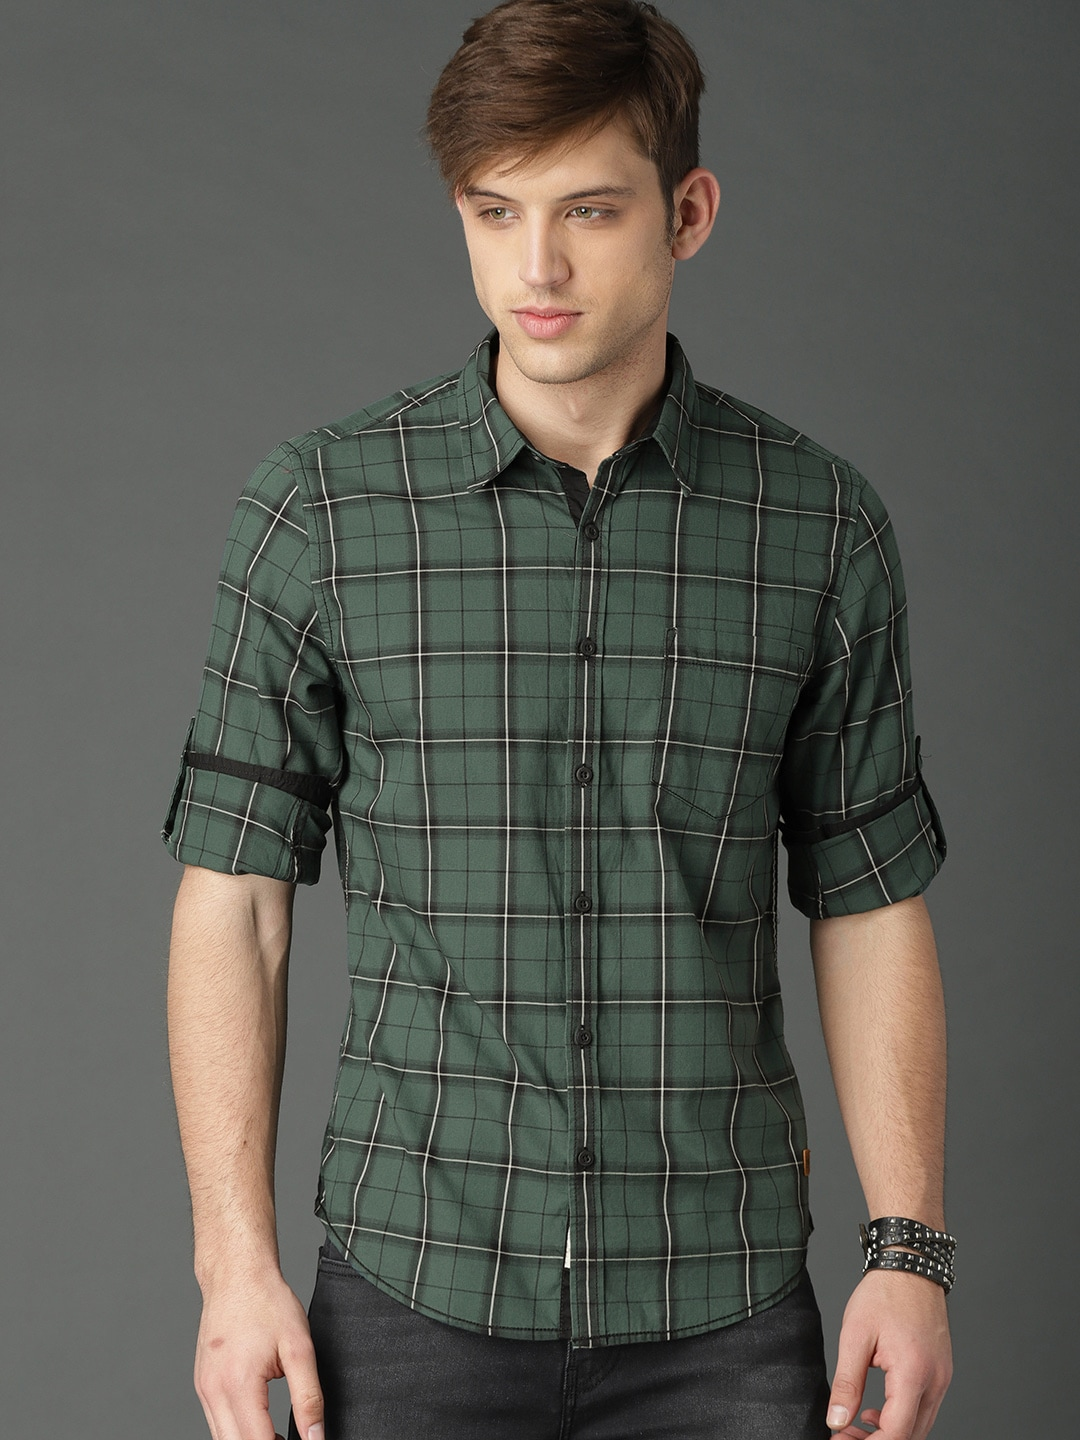 aa1fcf40f97 Buy Roadster Shirts For Men   Women Online at Myntra